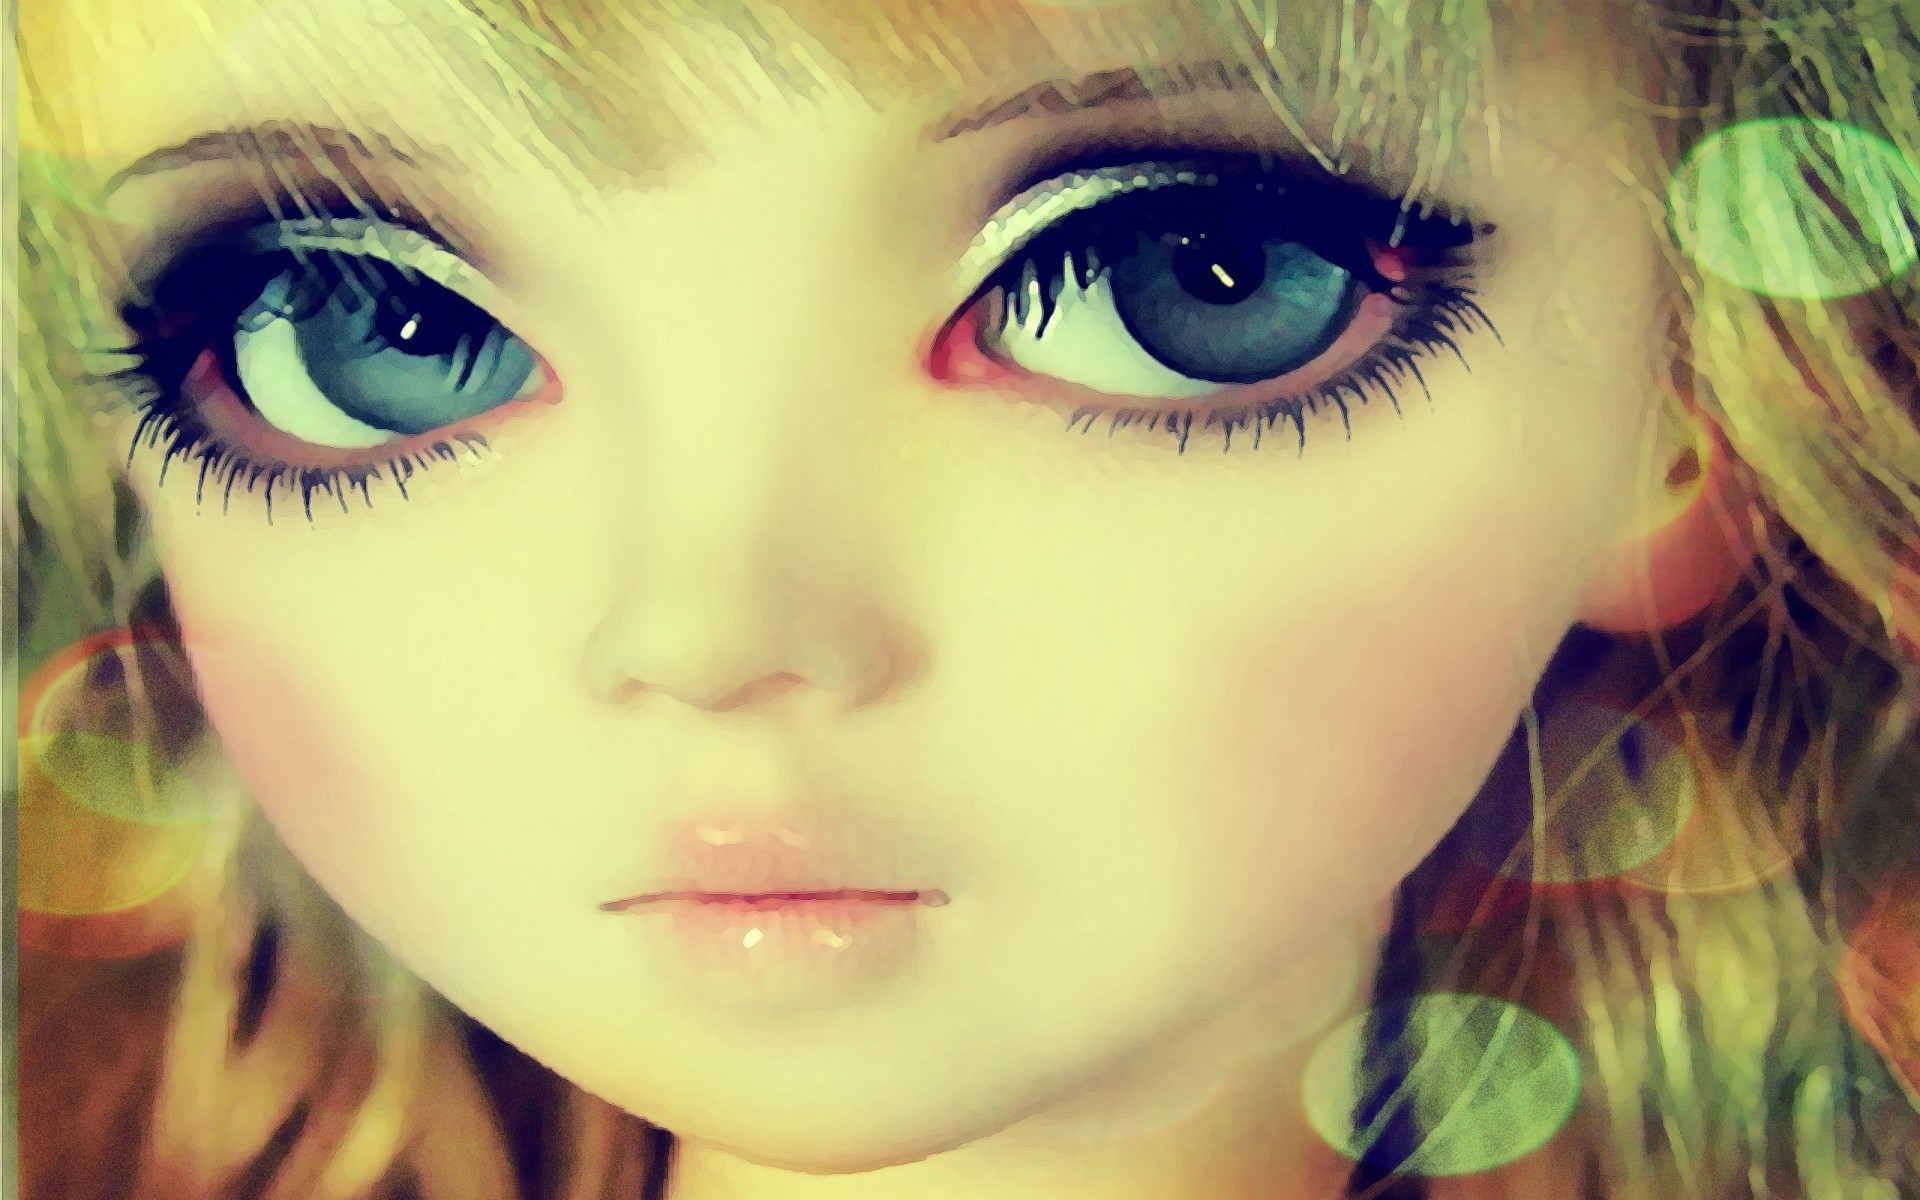 Cute Dolls Wallpapers : Find best latest Cute Dolls Wallpapers in HD for  your PC desktop